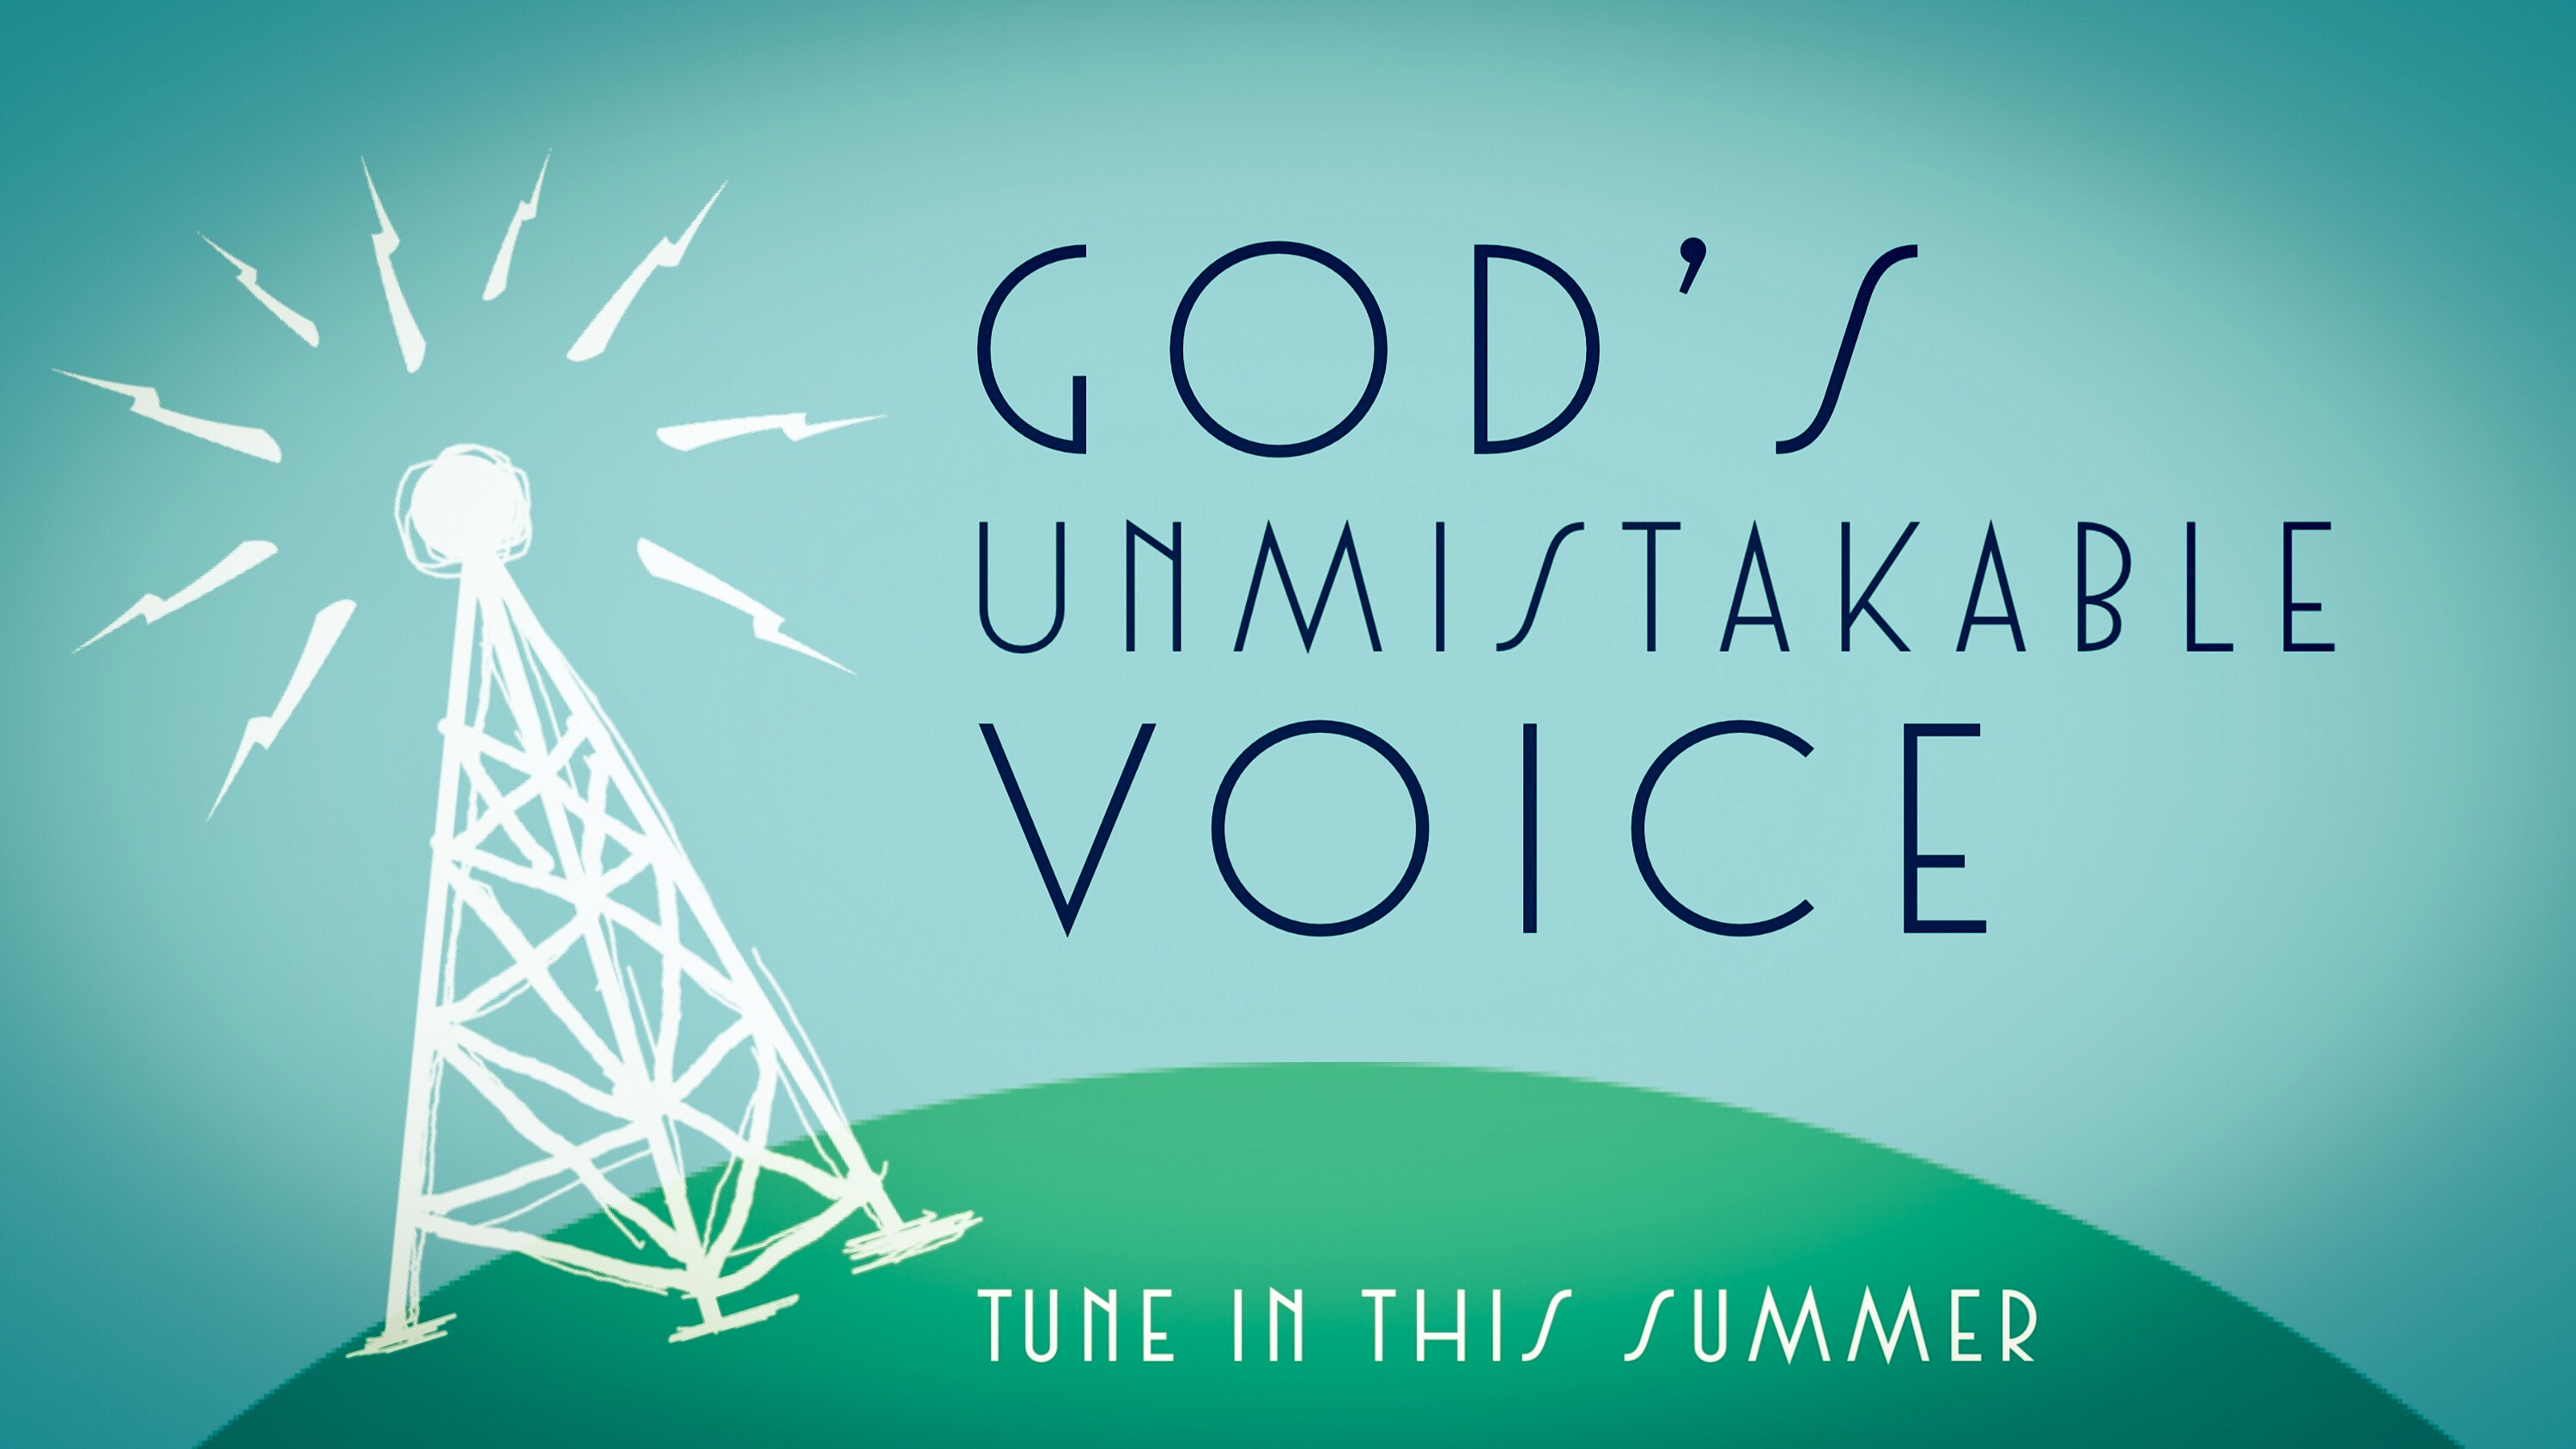 God's Unmistakable Voice (graphic).jpg